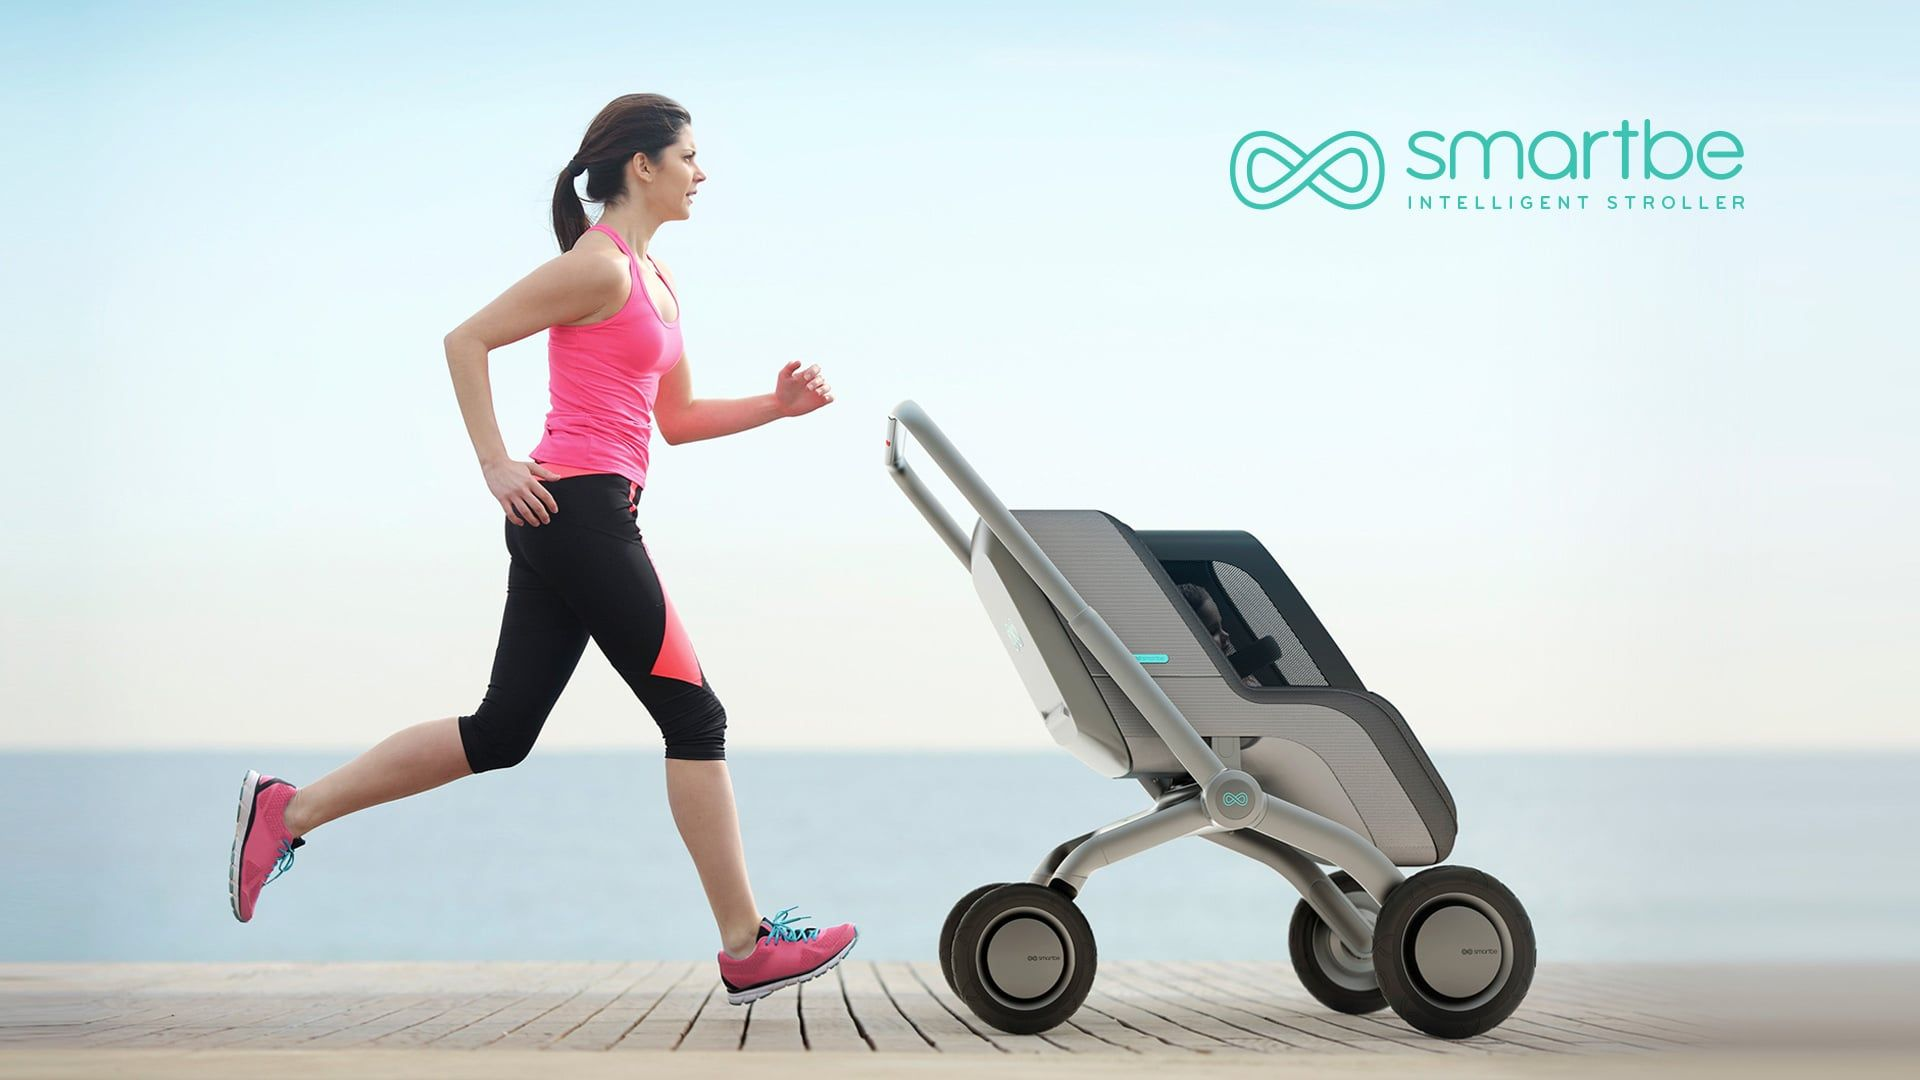 Smartbe Is First Self Driving Intelligent Stroller